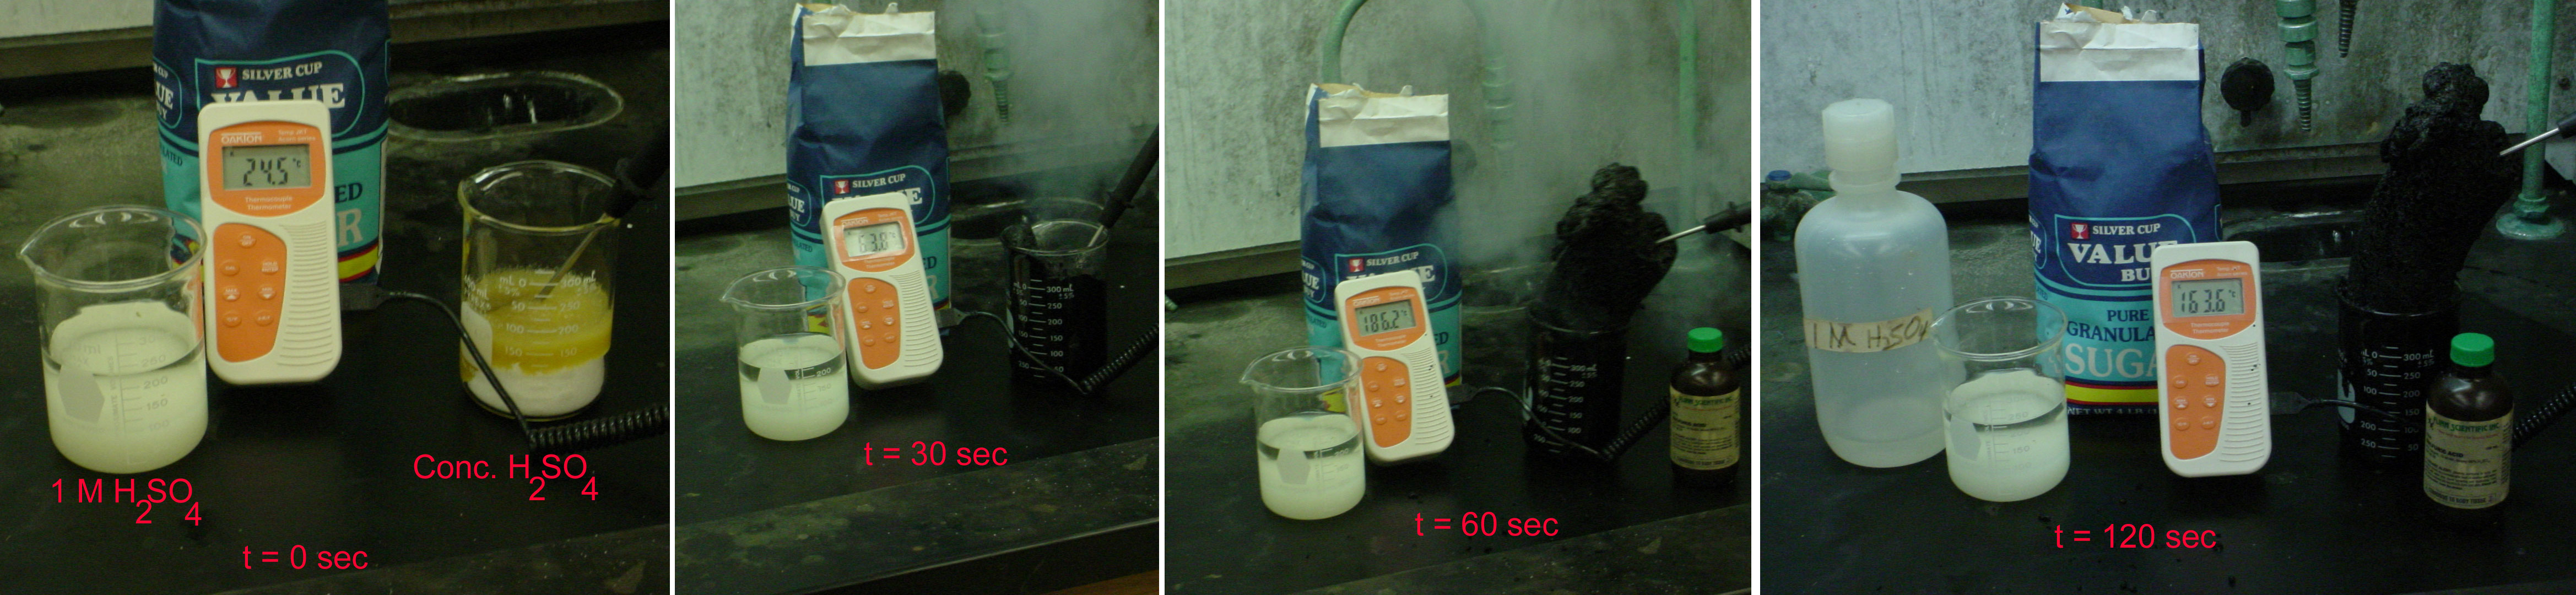 What is the concentration of concentrated sulfuric acid?